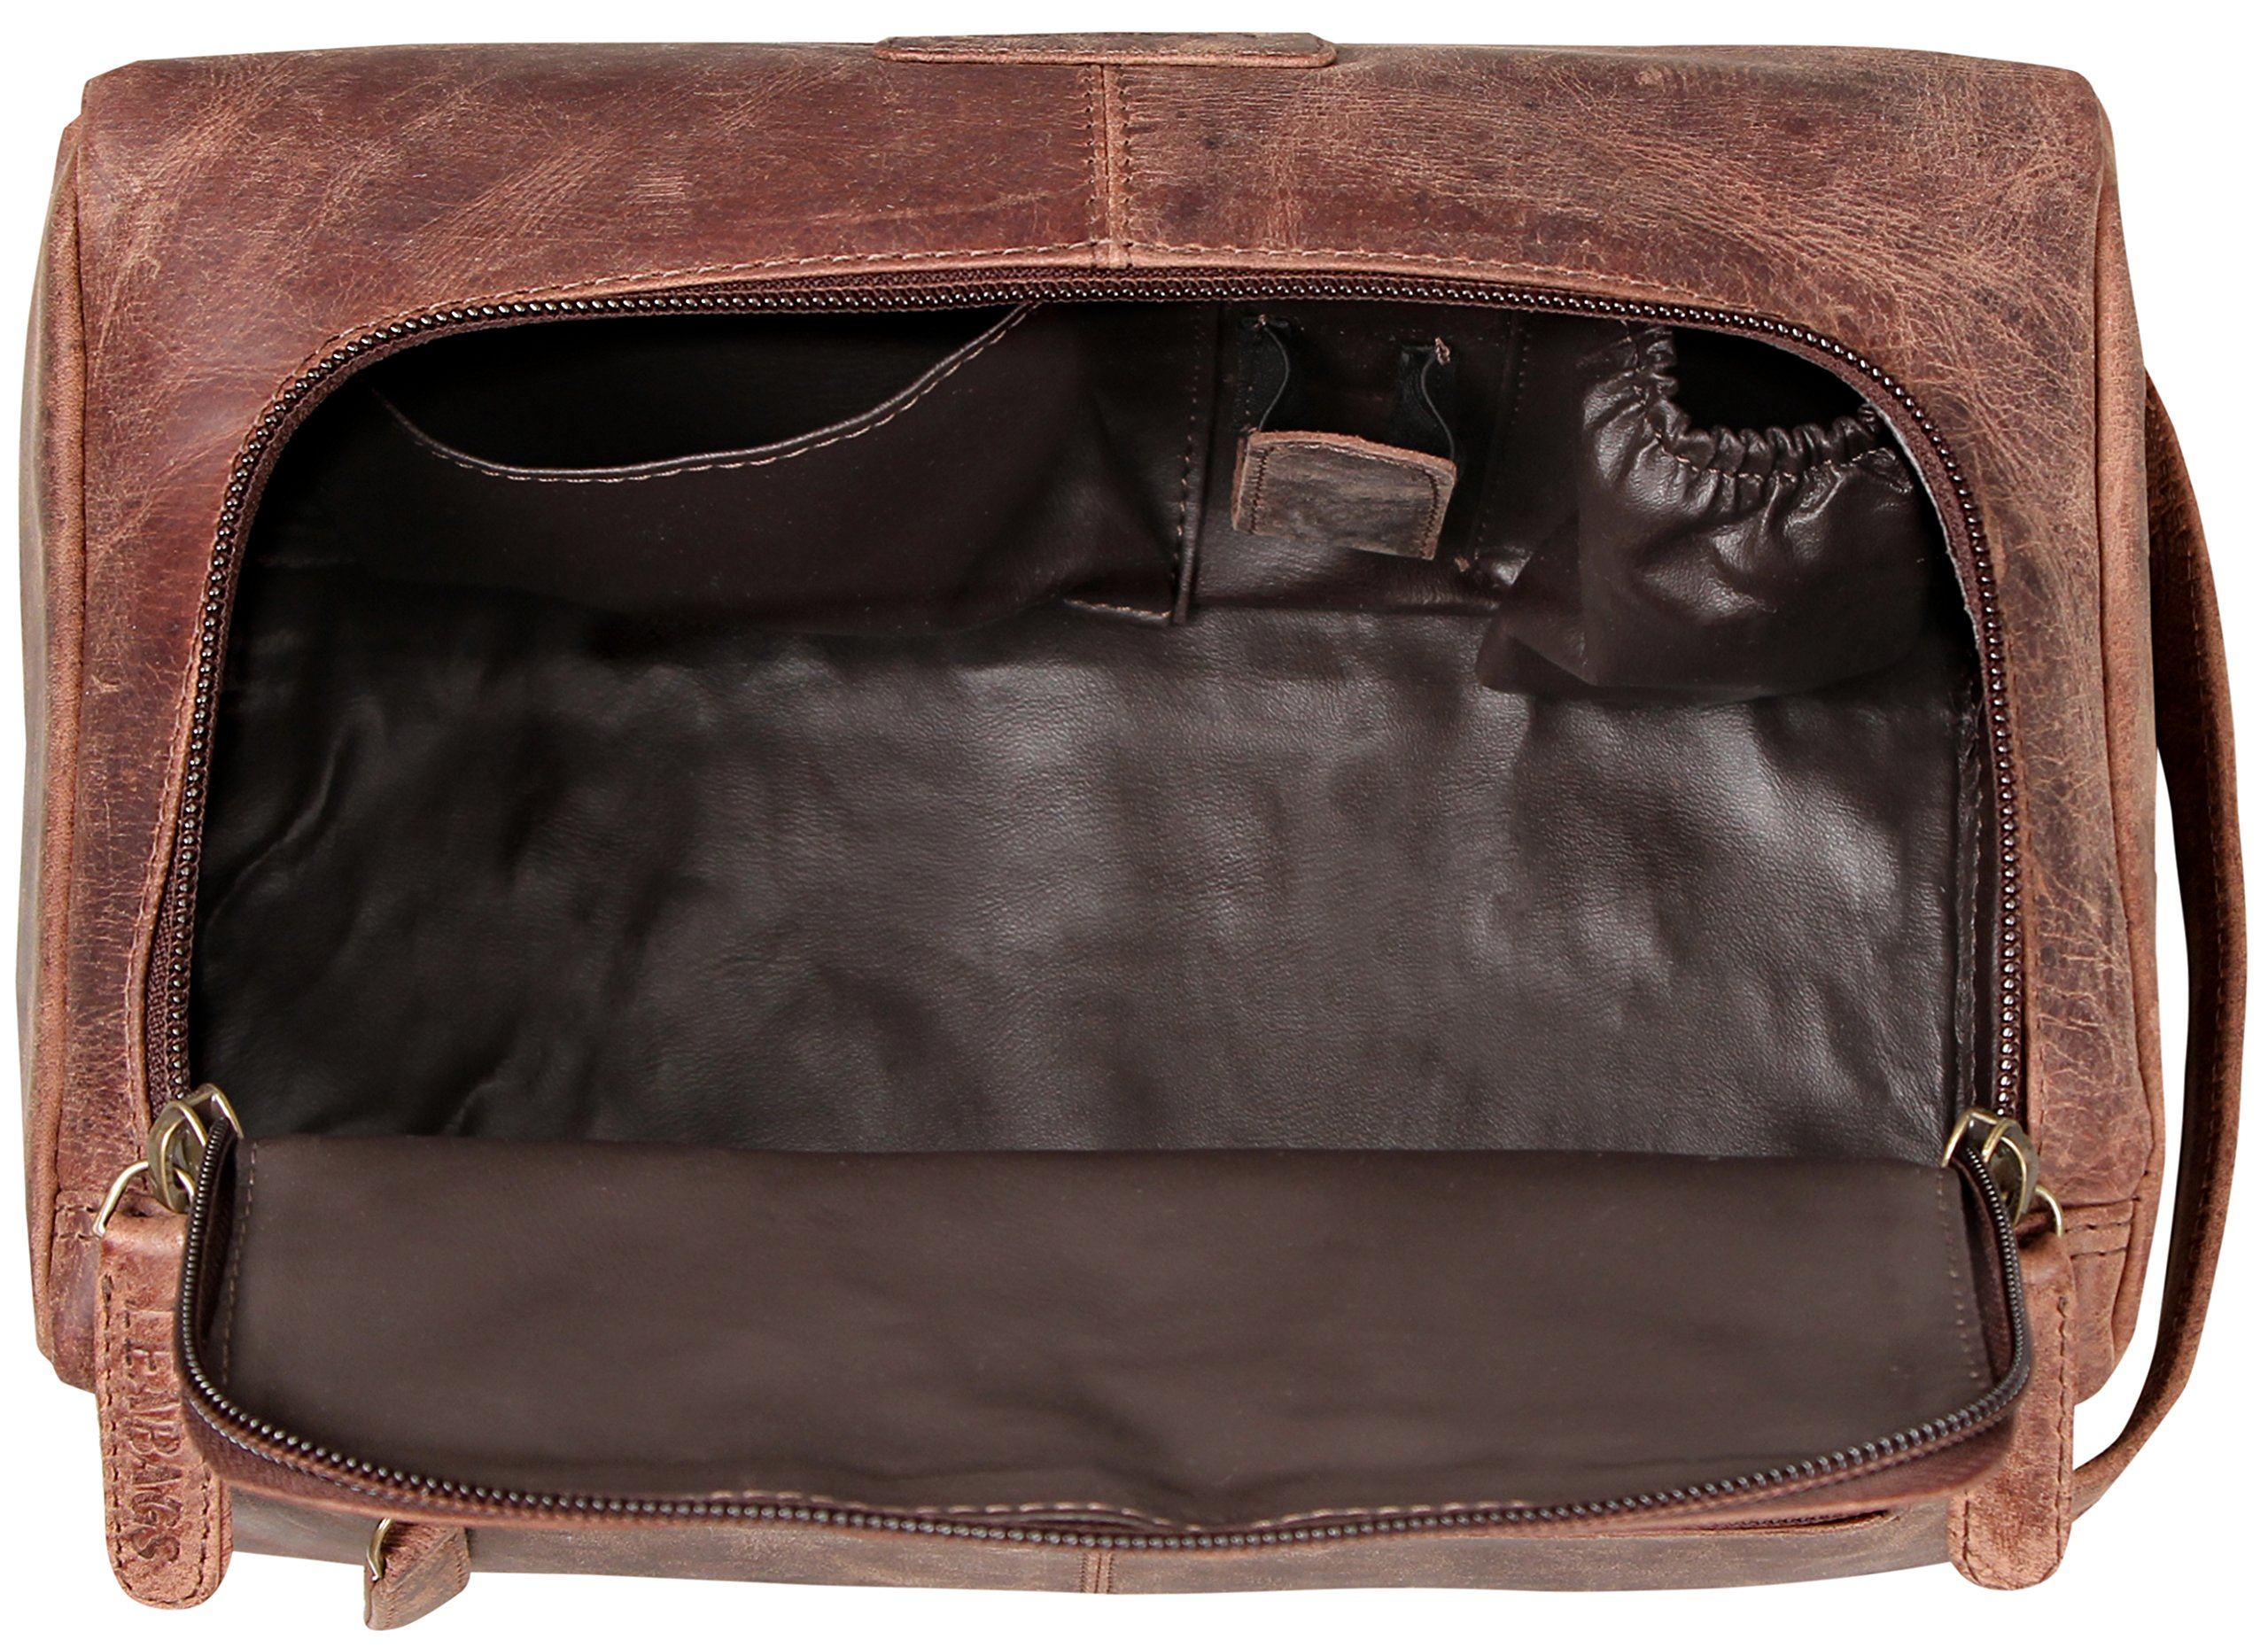 LEABAGS Palm Beach genuine buffalo leather toiletry bag in vintage style - Nutmeg by LEABAGS (Image #6)